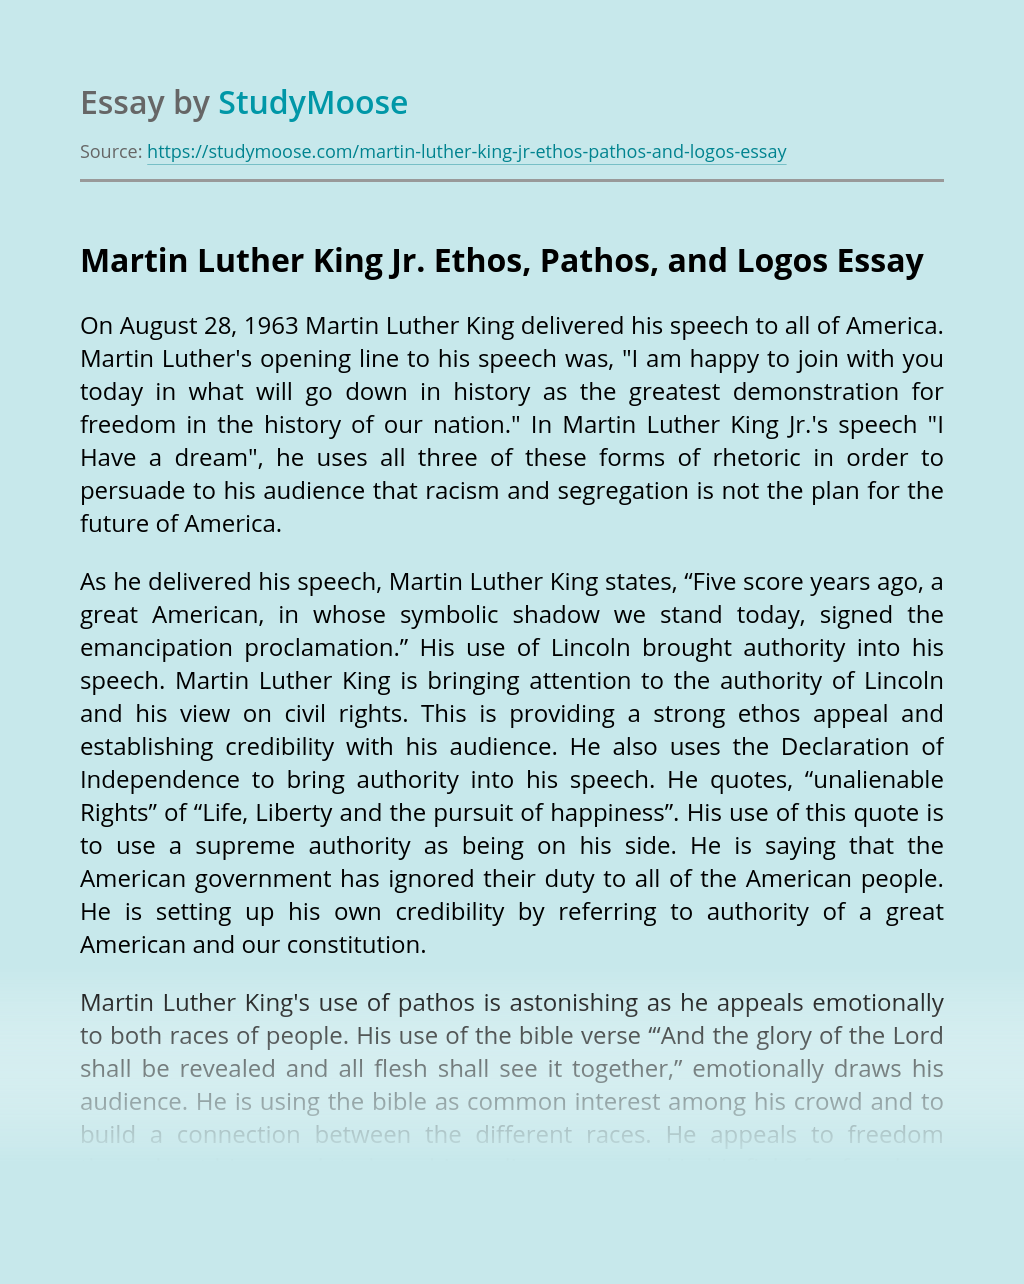 Martin Luther King Jr. Ethos, Pathos, and Logos